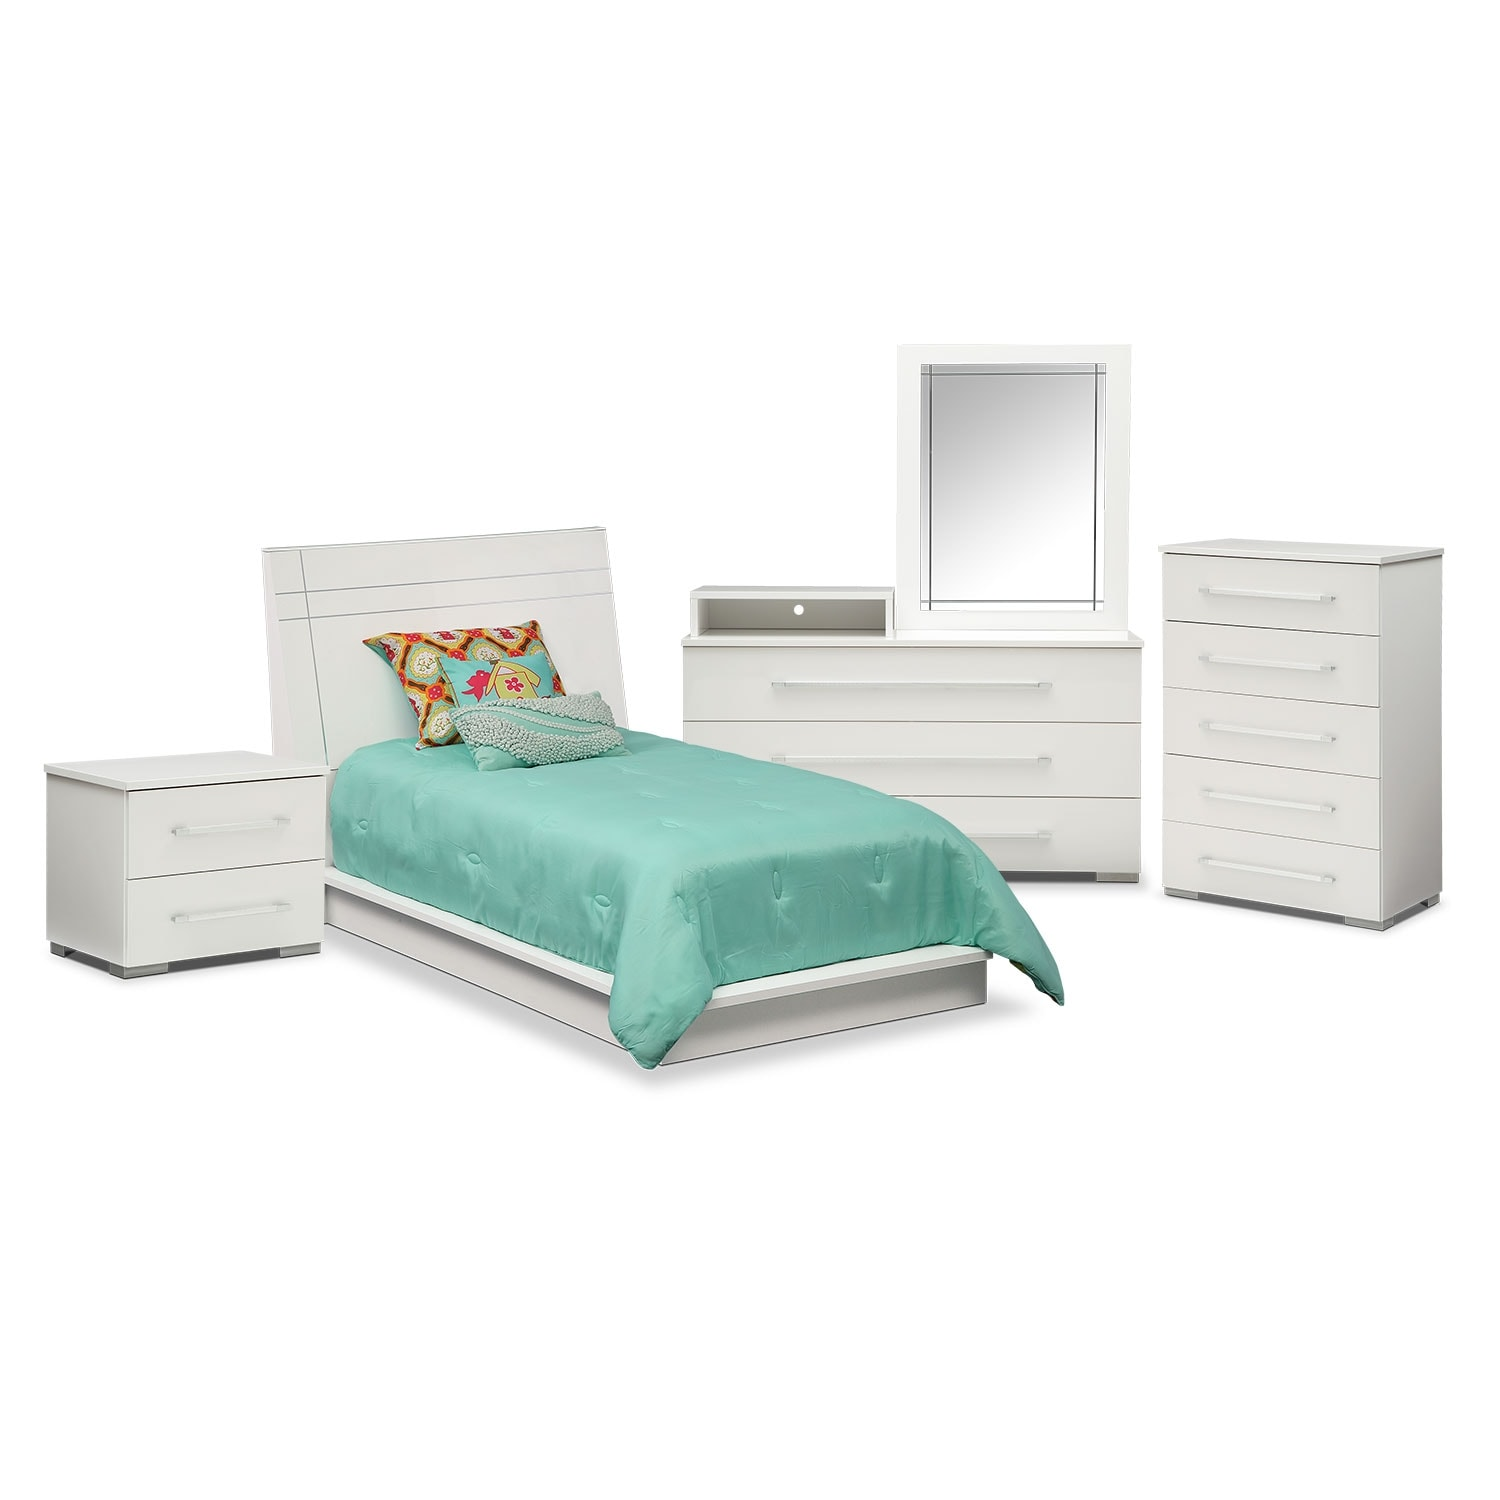 Dimora 7-Piece Twin Panel Bedroom Set with Media Dresser - White